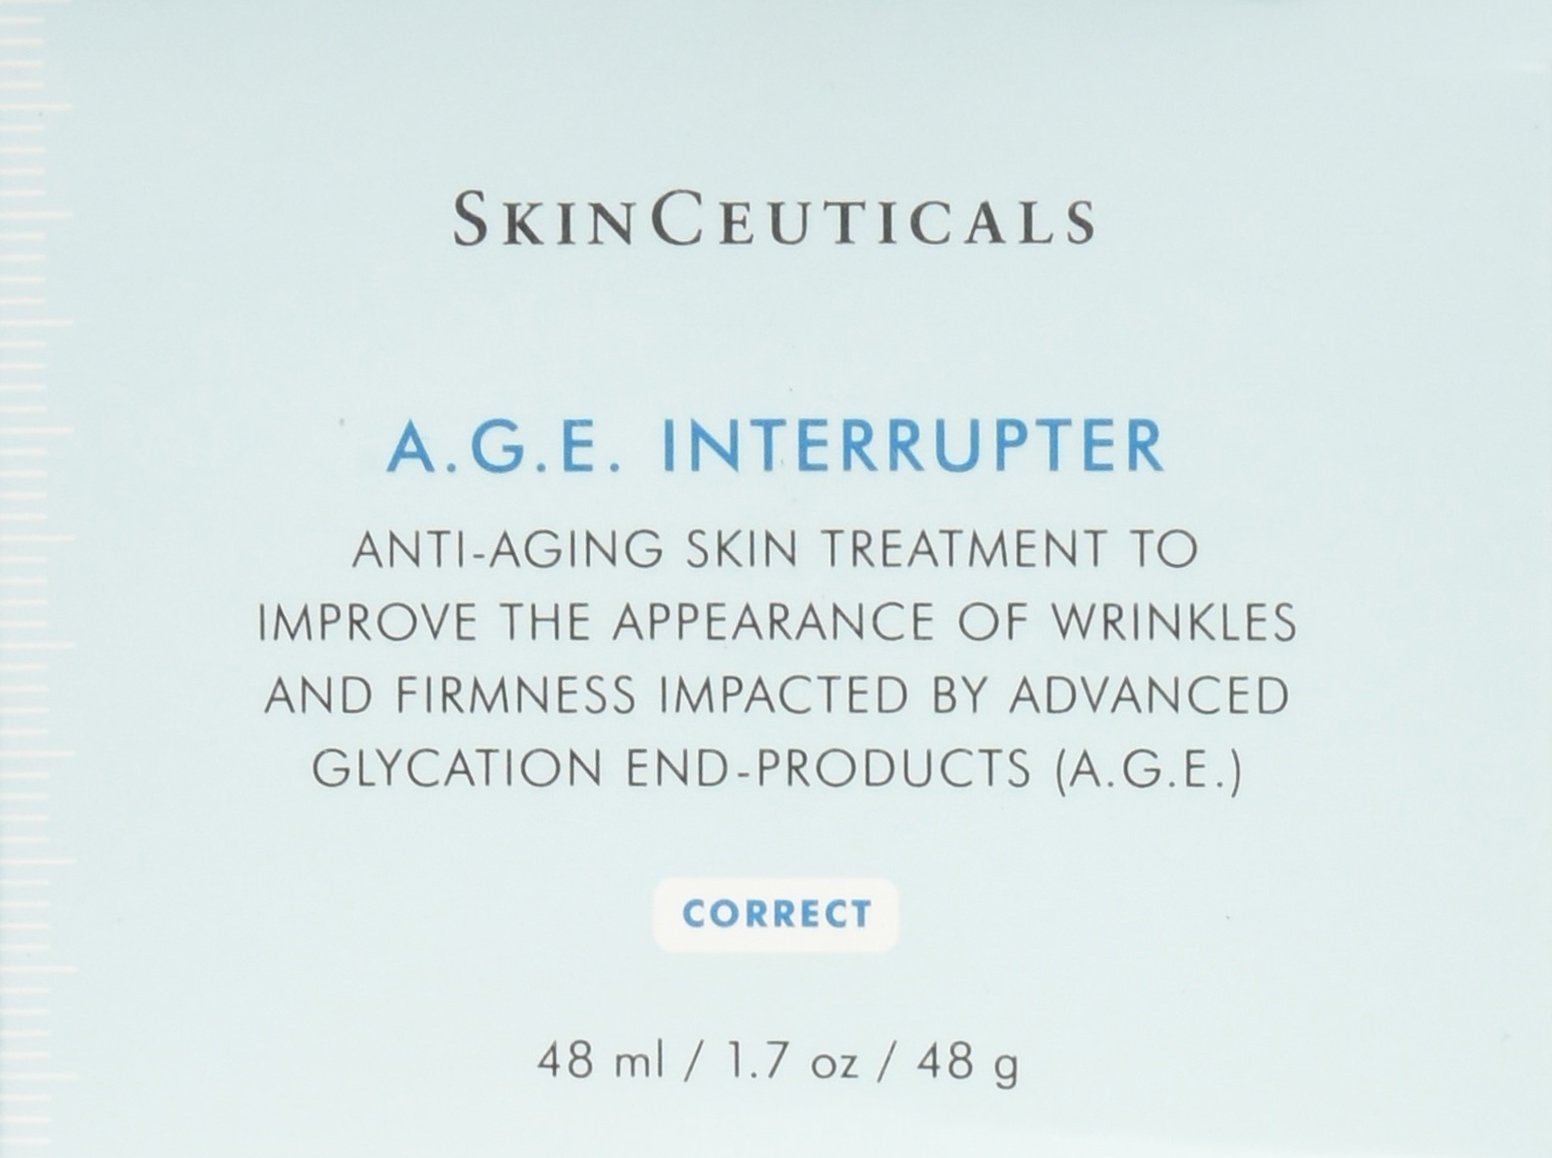 Skinceuticals A.g.e. Interrupter Mature Skin Treatment, 1.7-Ounce